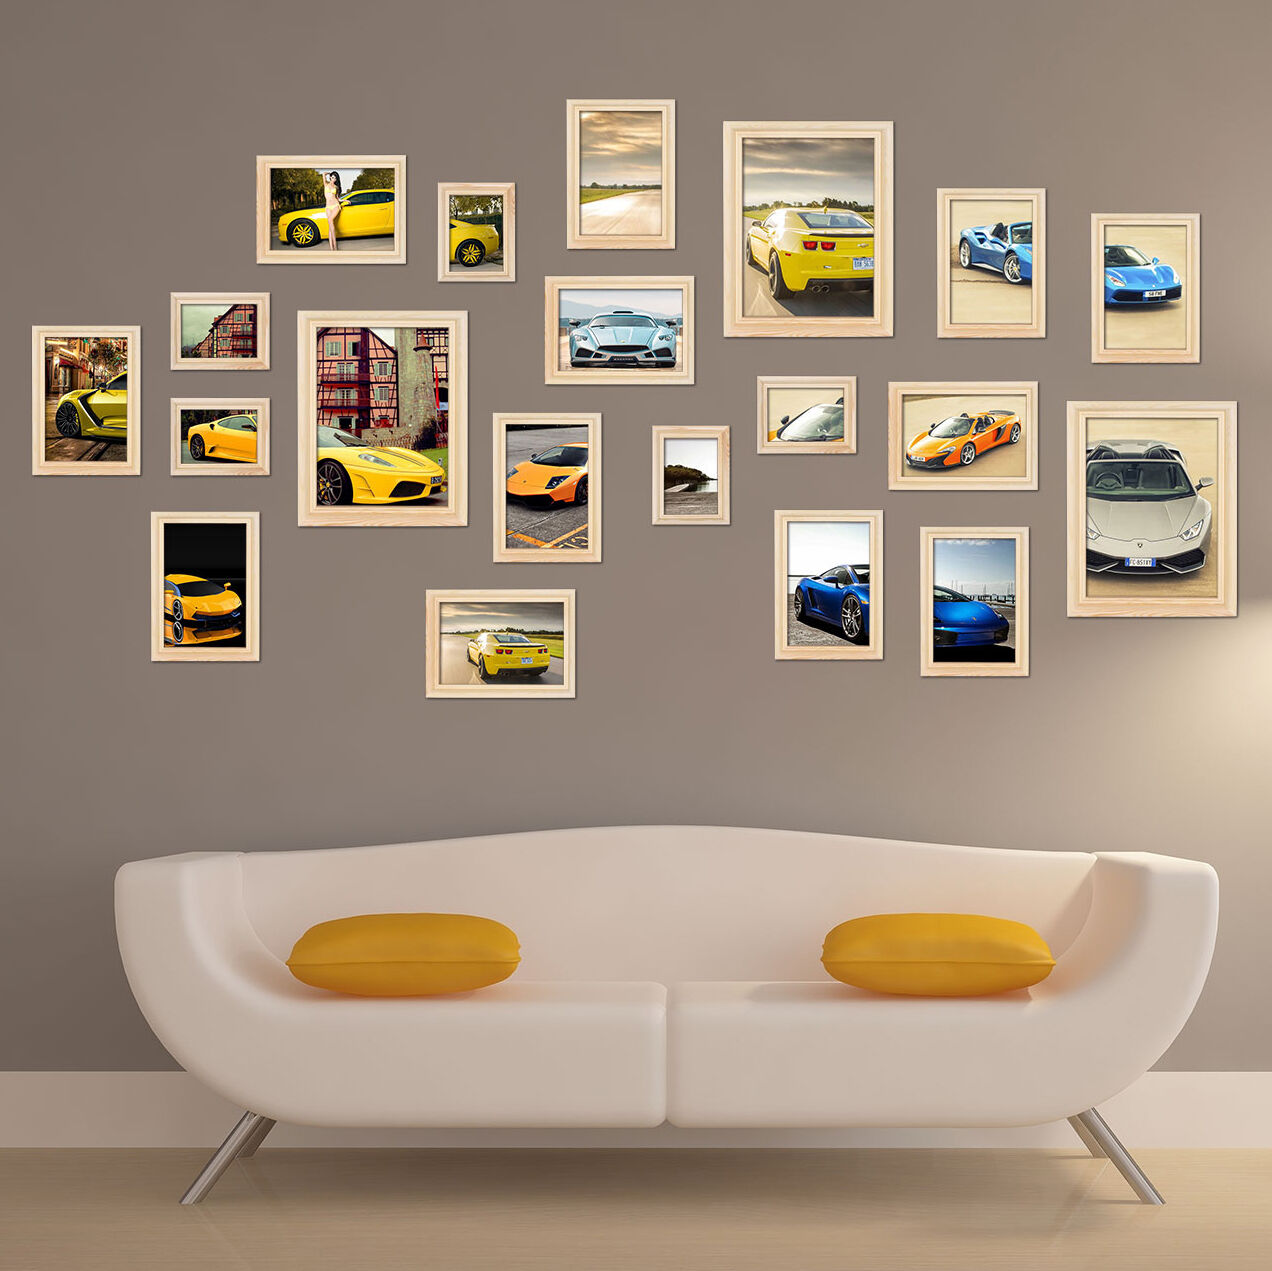 En bois 20 pcs Mural Cadres Photo Décoration Maison d'affichage collages Set